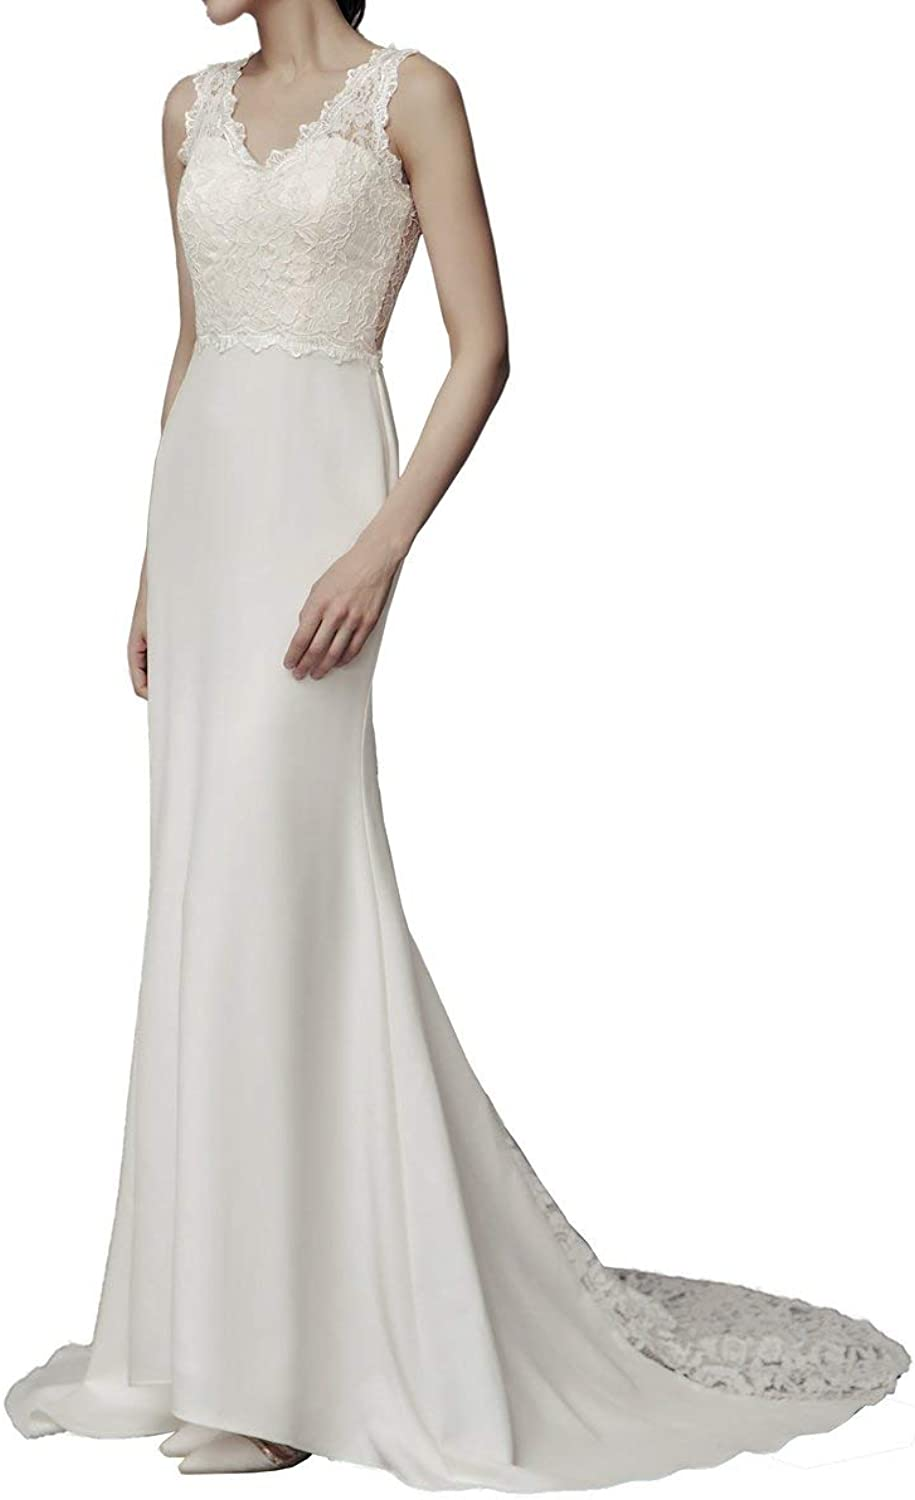 ICCELY Wedding Dress for Bride Lace Bridal Dress Bride Dresses with Long Train